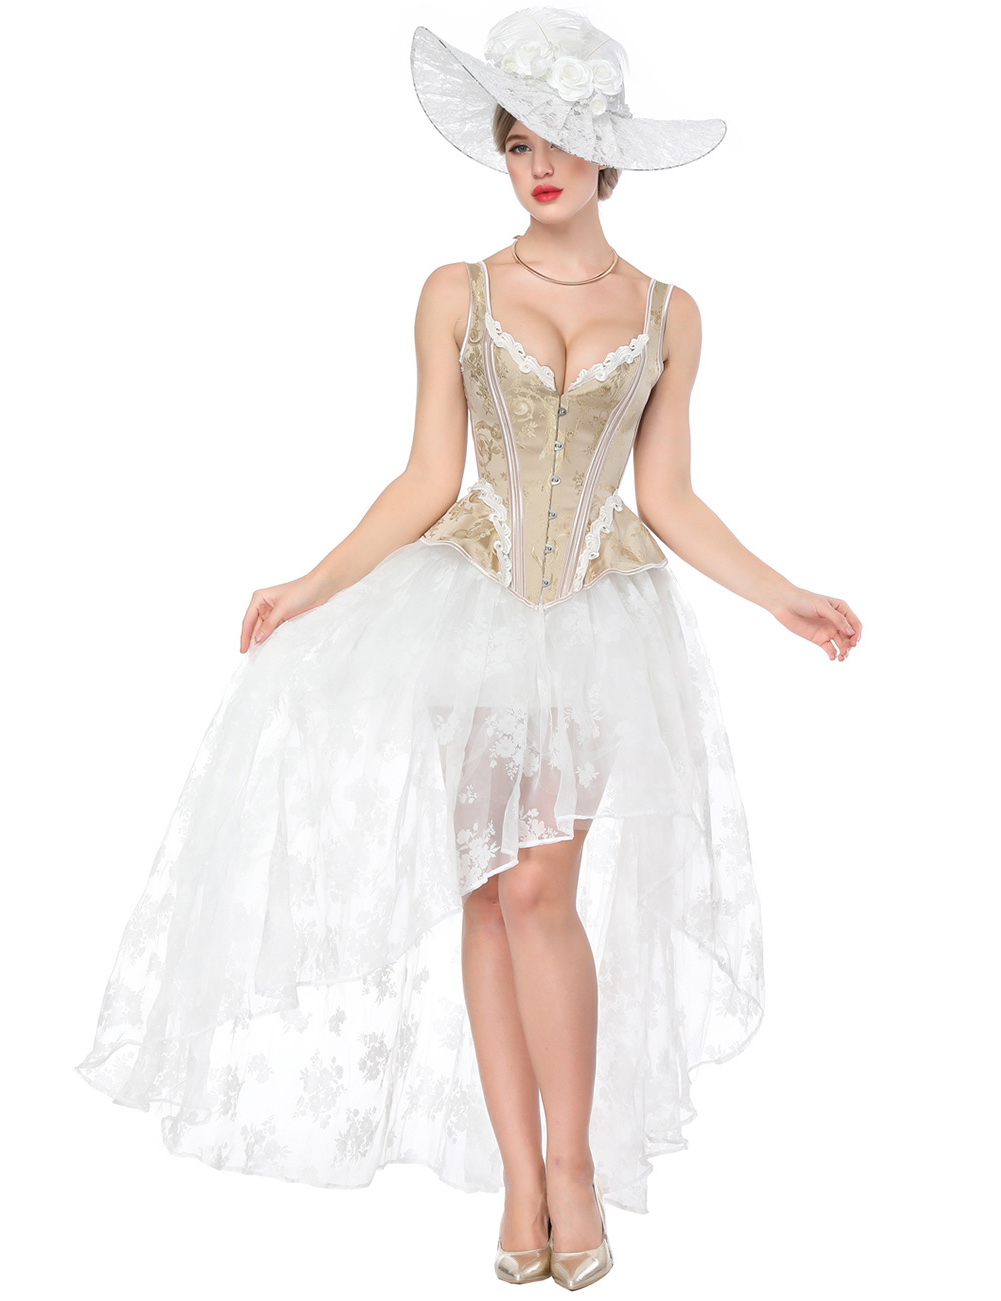 //cdn.affectcloud.com/hexinfashion/upload/imgs/Corset/Overbust_Corset/A180044-BE1/A180044-BE1-201911055dc15f1e3a884.jpg